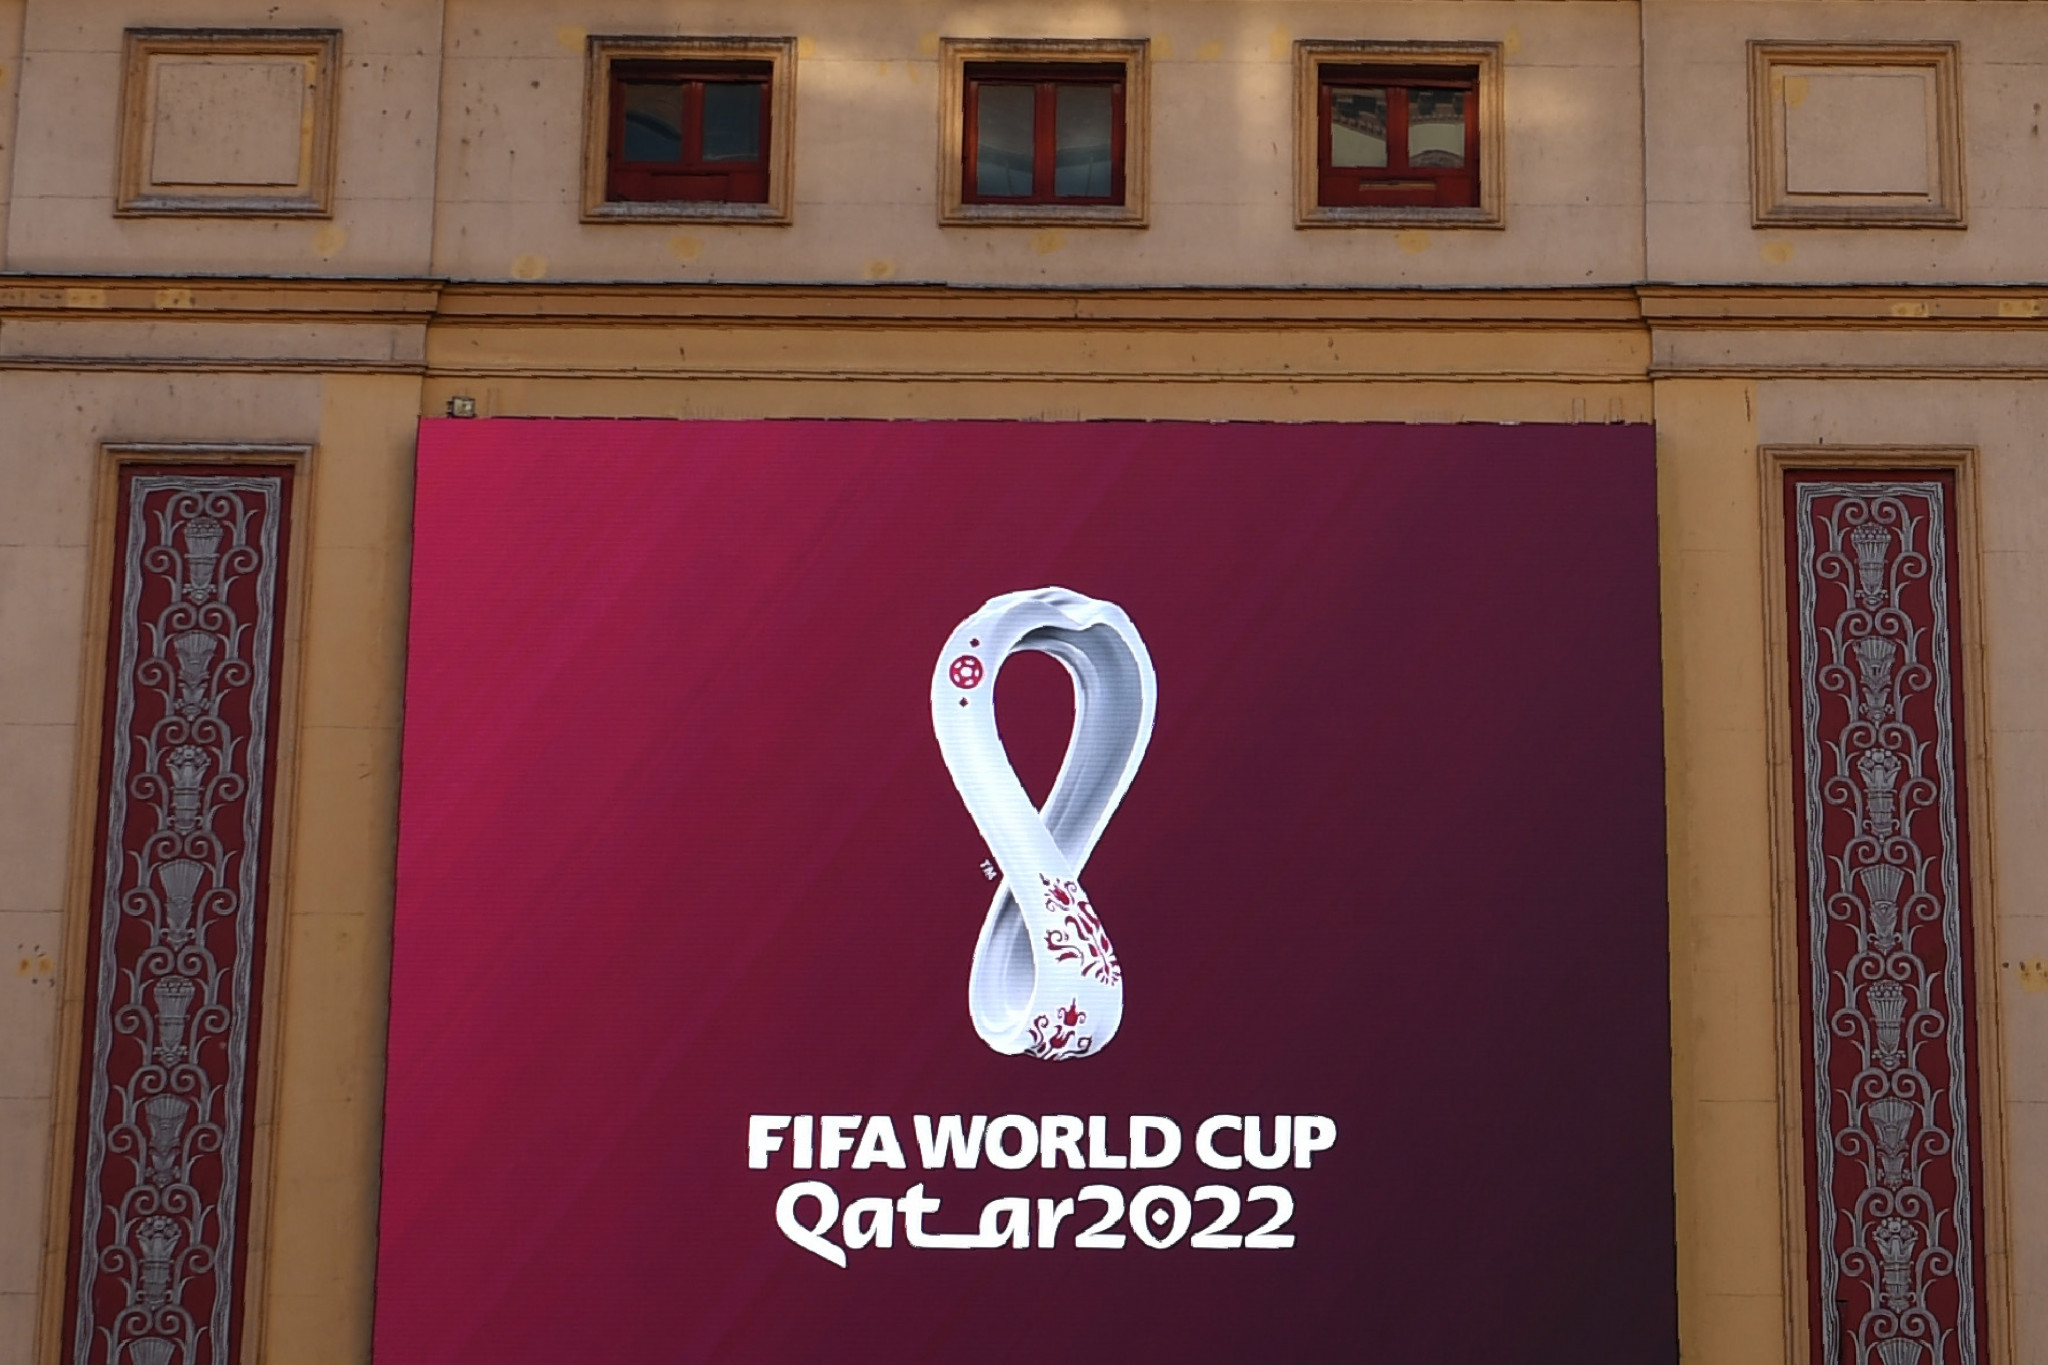 Qatar could ban players who are not fully vaccinated from 2022 FIFA World Cup